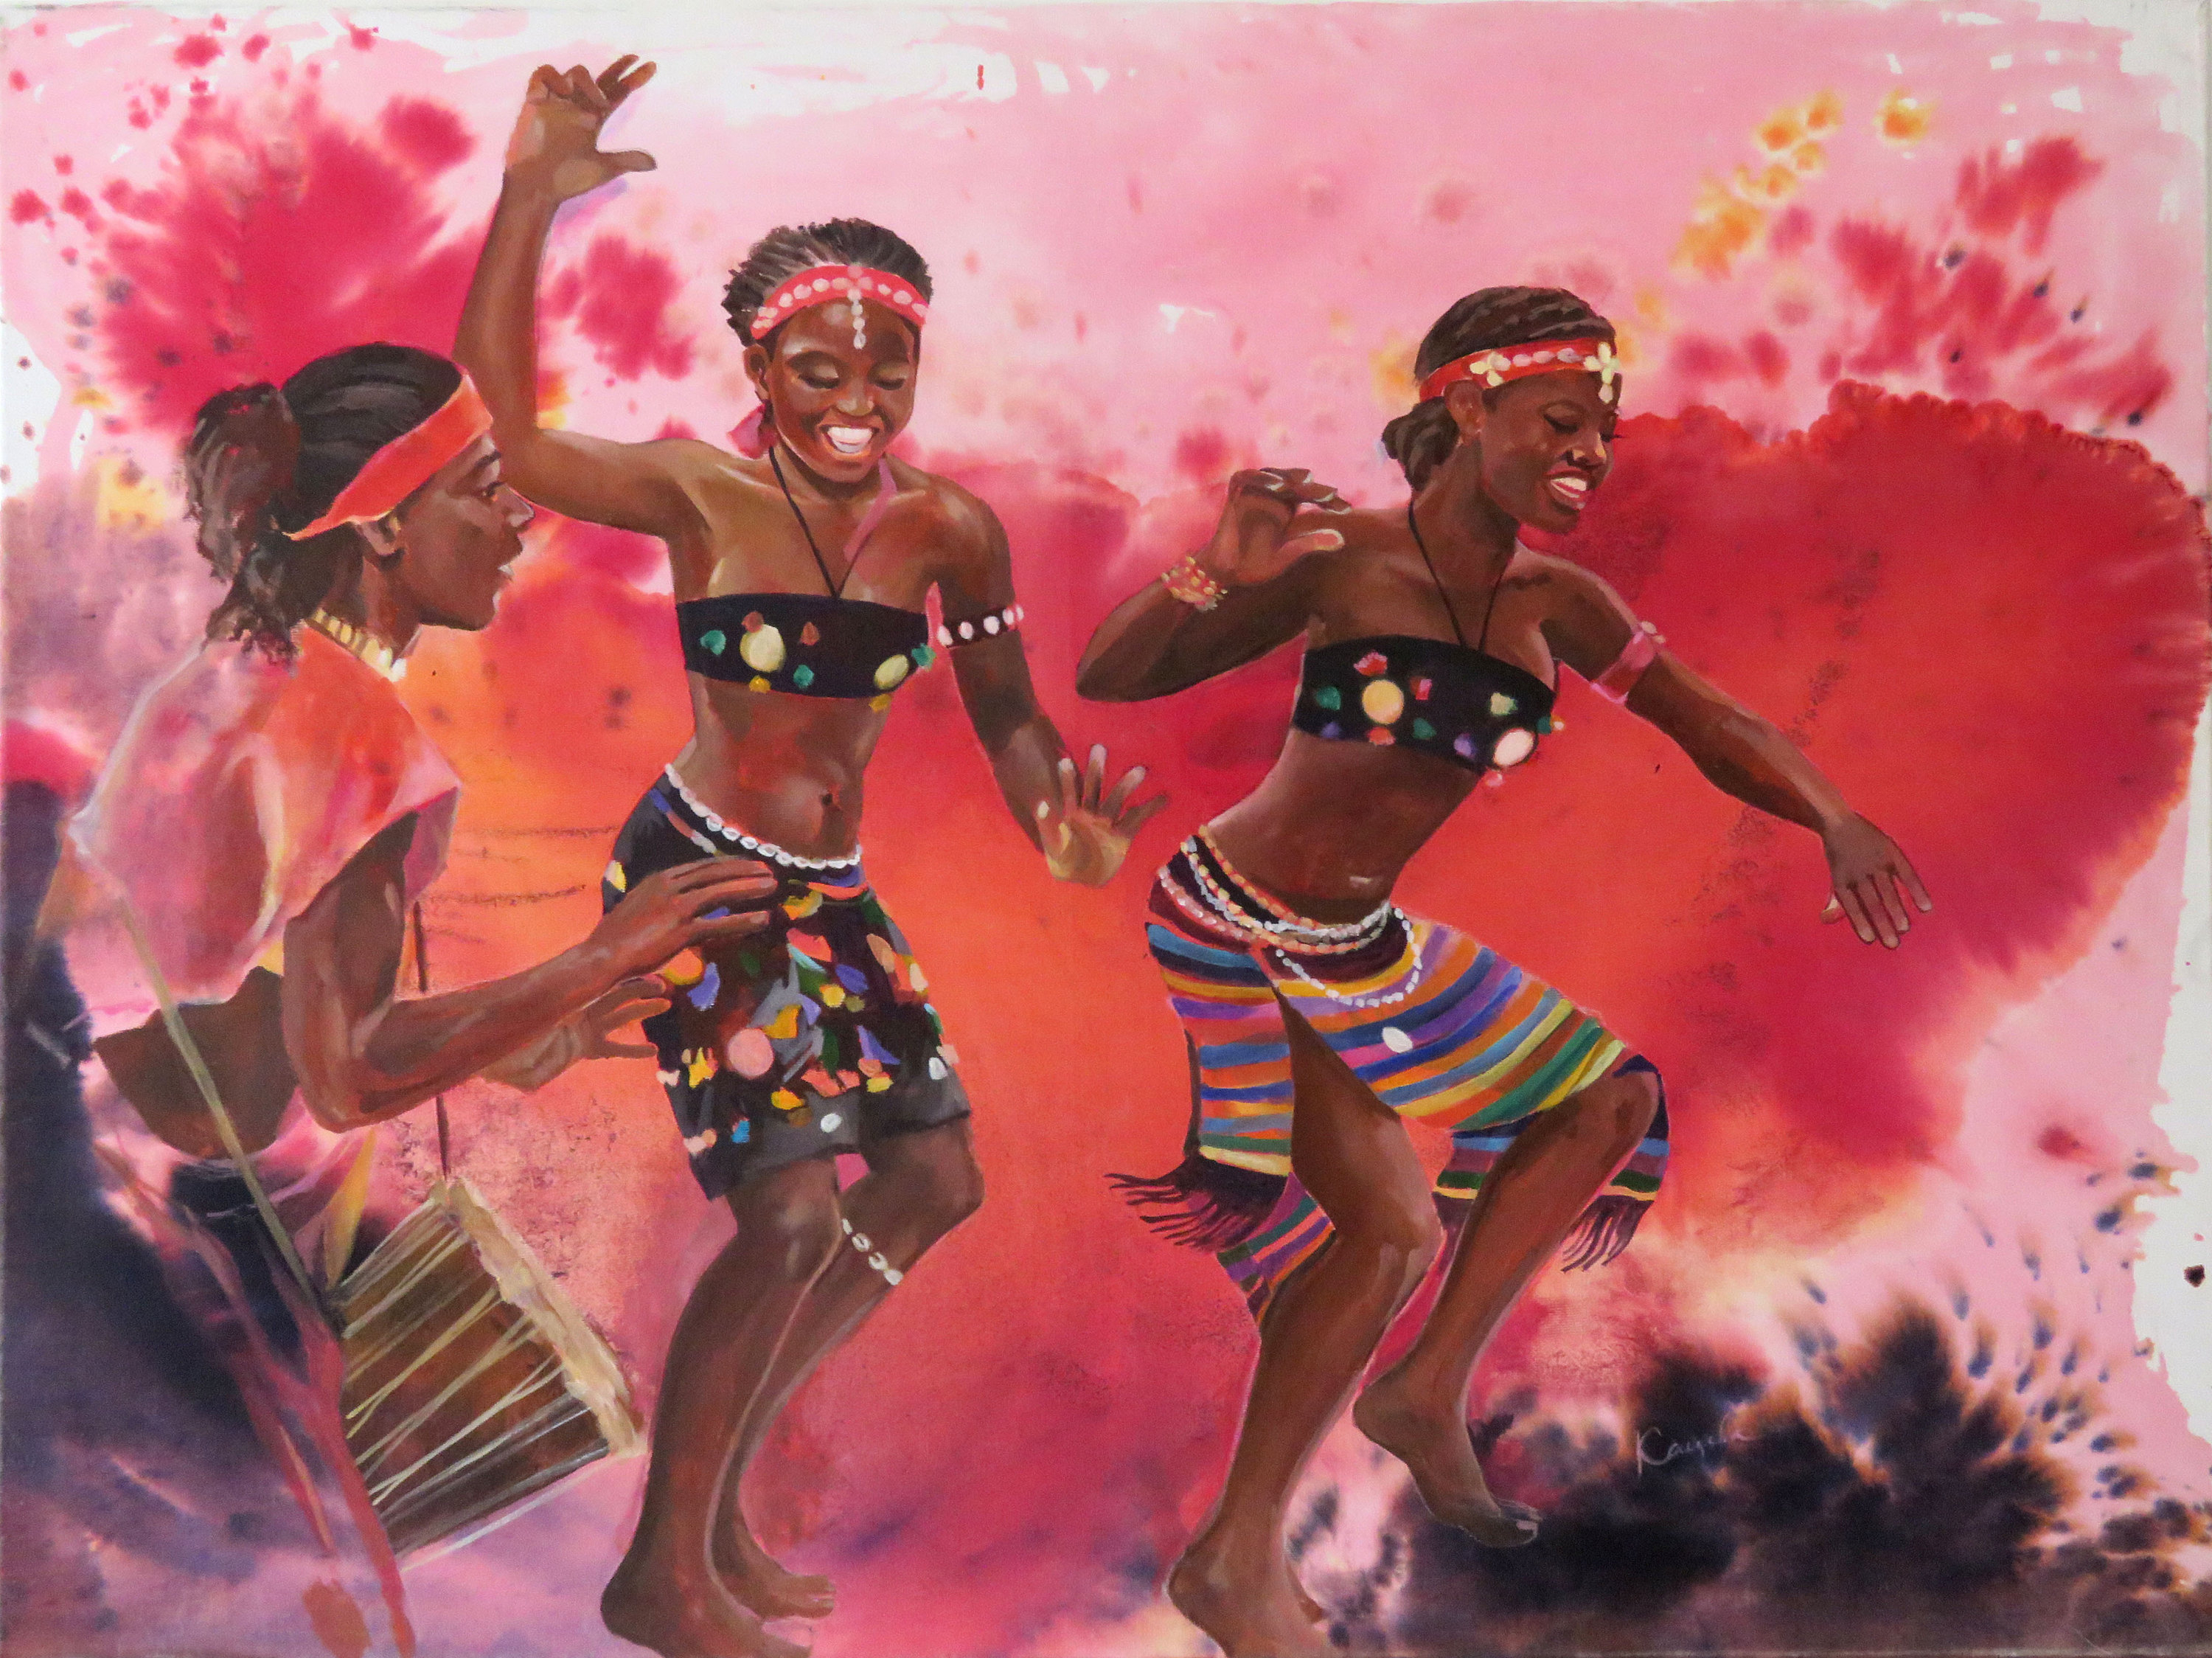 African Dancers, Acrylic Painting On Canvas, Mixed Media: Ink, Acrylic, Large Canvas Wall Art, African Drums, Joyful Women Regarding Dance Of Desire Wall Decor (View 4 of 30)